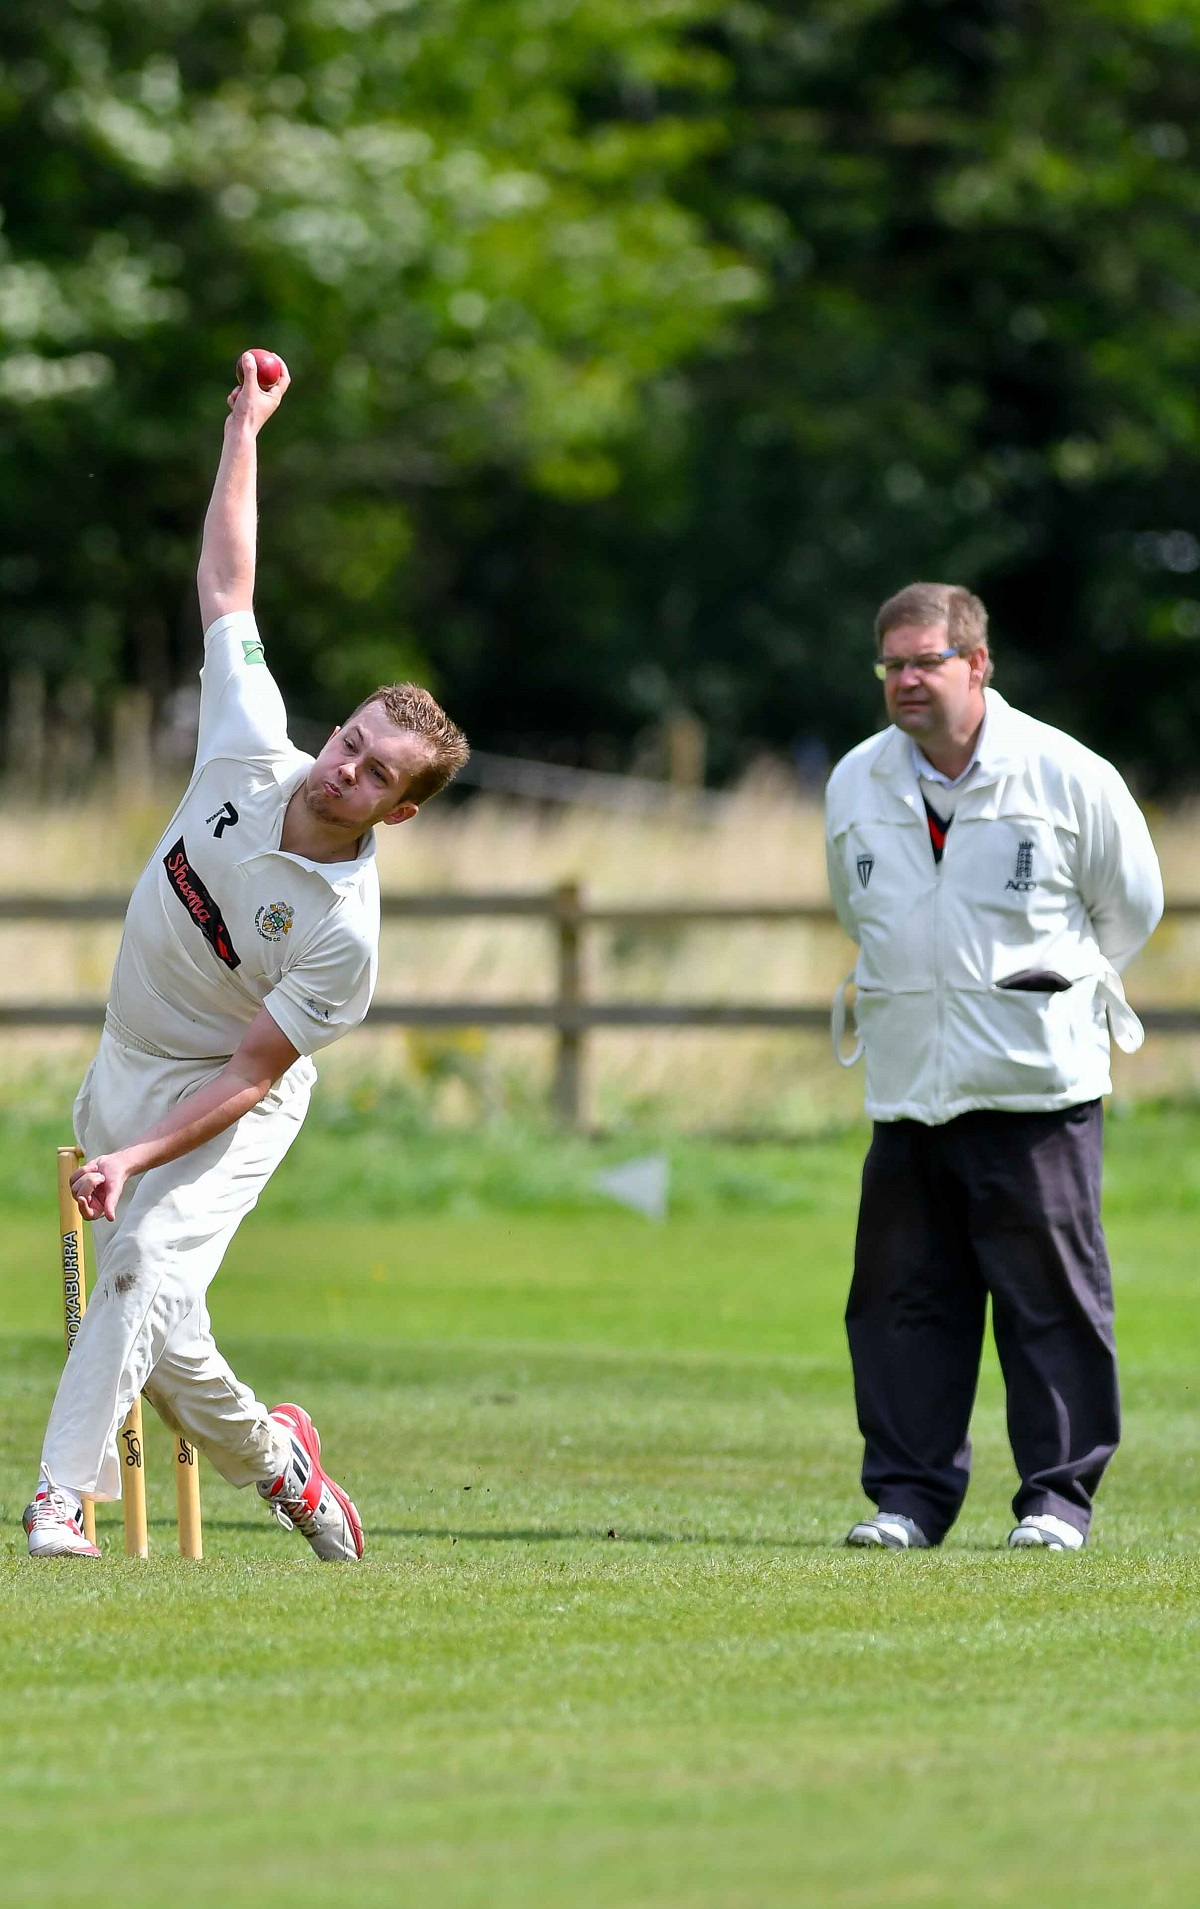 Jonny Teale took 5-20 off 3.1 overs as Bingley Congs defeated Ingrow St John's in the Manorlands Plate final at Oakworth